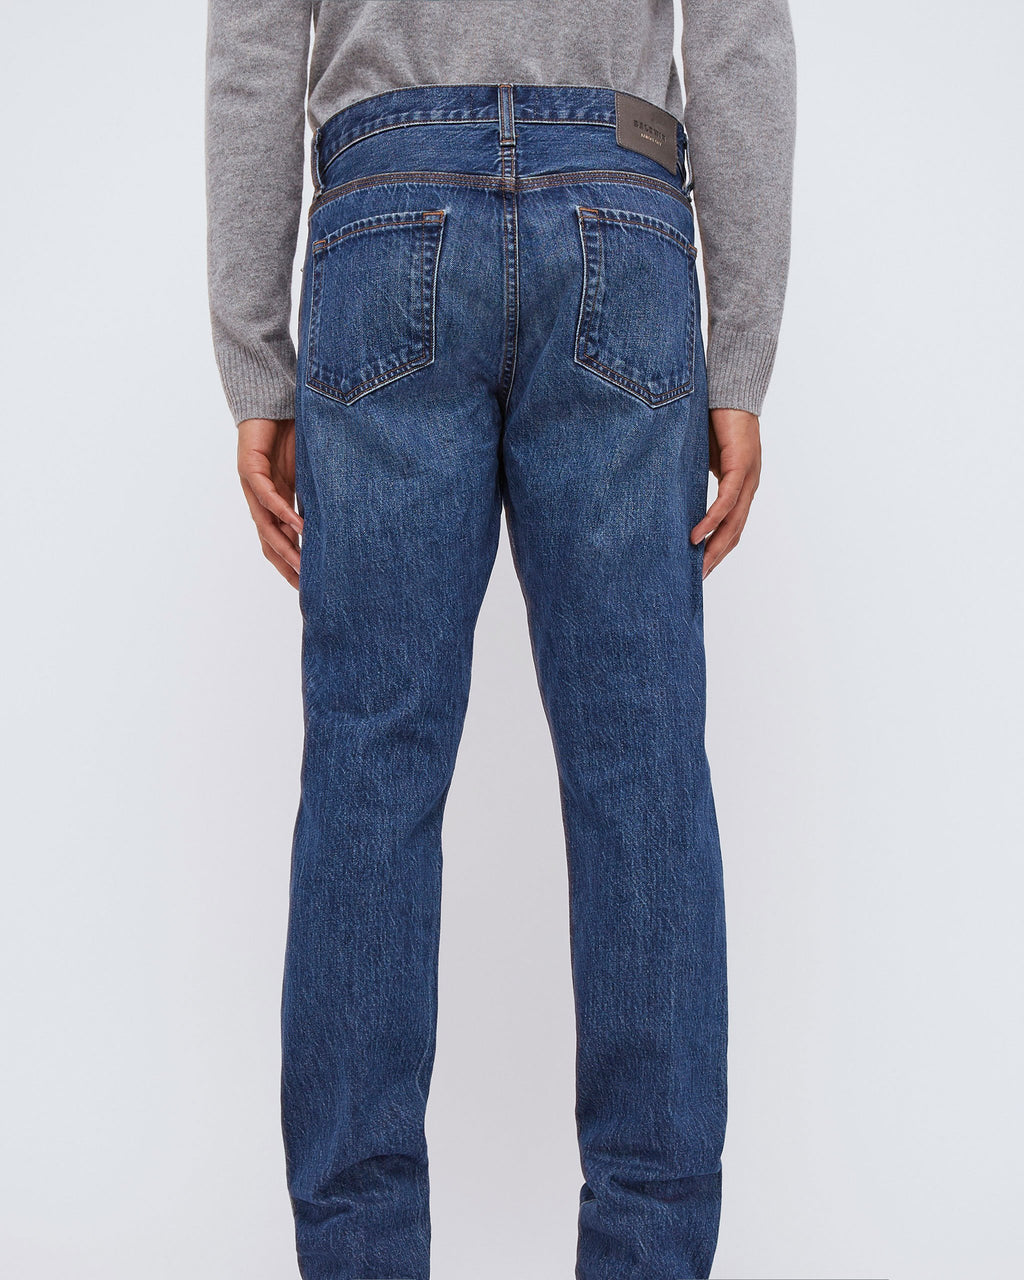 The Henley Jean in Corso